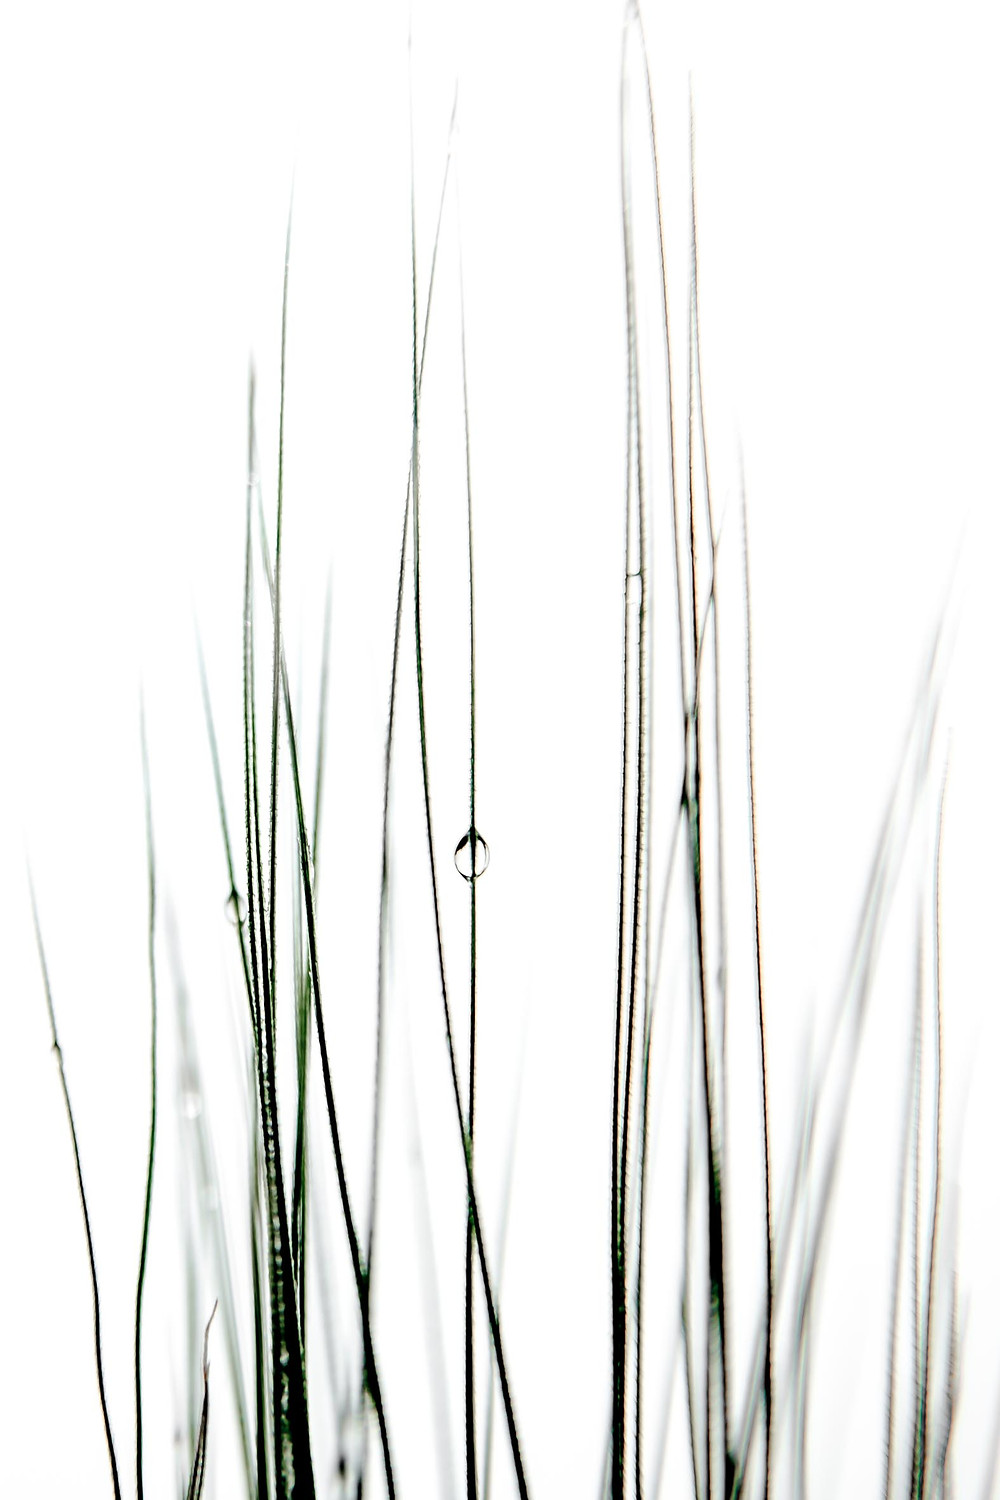 A water drop holding its balance on a thin blade of grass. Photo by Giulio D'Ercole, Rome Photo Fun Tours.